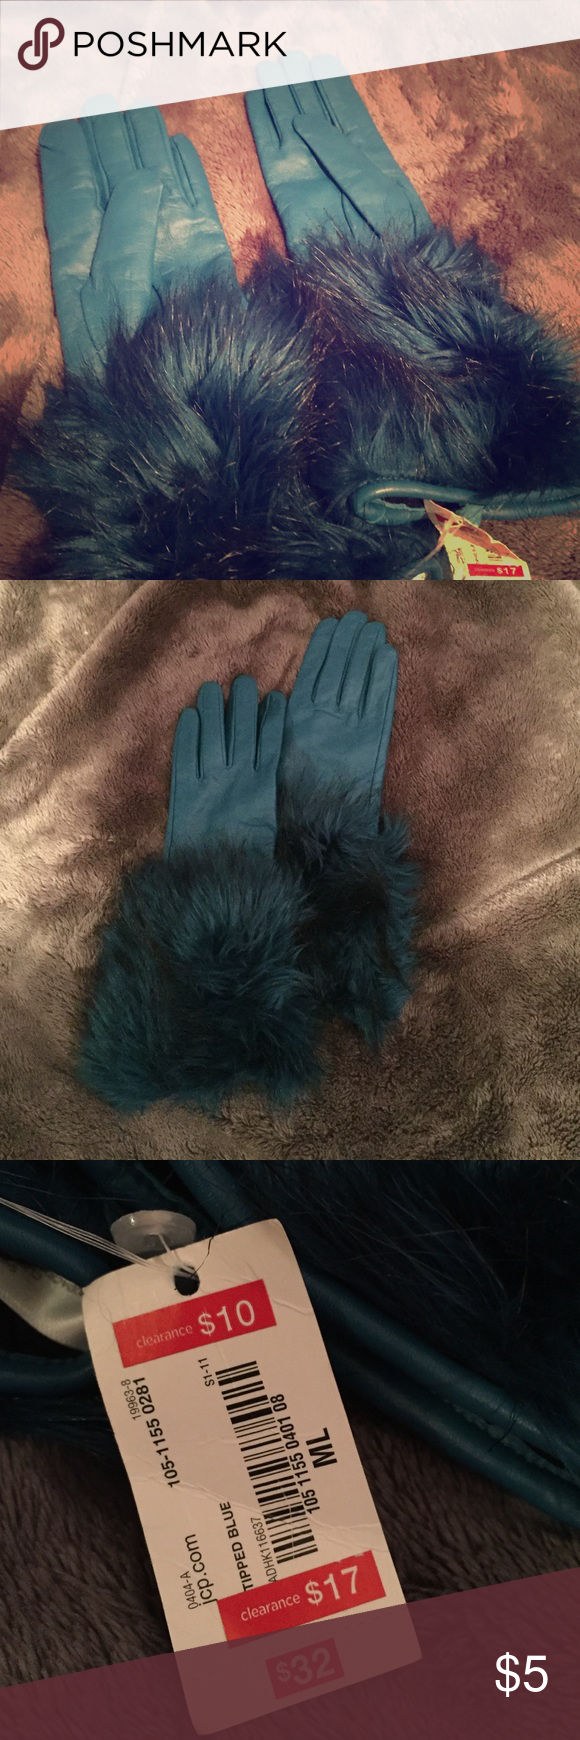 Tipped Blue Faux Fur Leather Gloves Teal colored gloves that go up about mid-forearm's length. A good gift for a mother or grandmother. Never been used! Feel free to make offers. jcpenney Accessories Gloves & Mittens